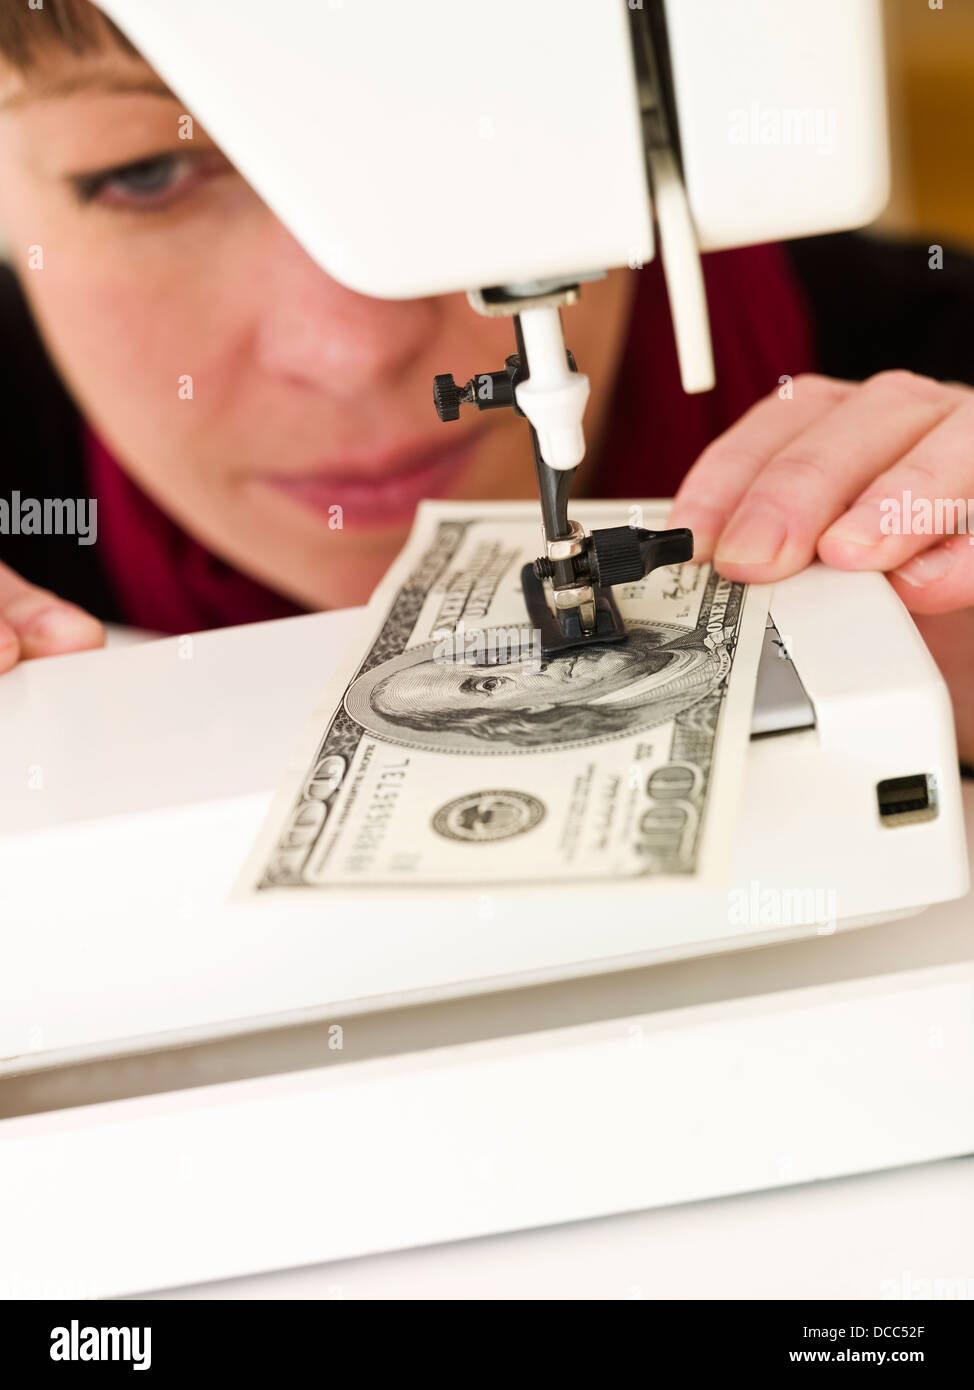 Woman sewing money - Stock Image